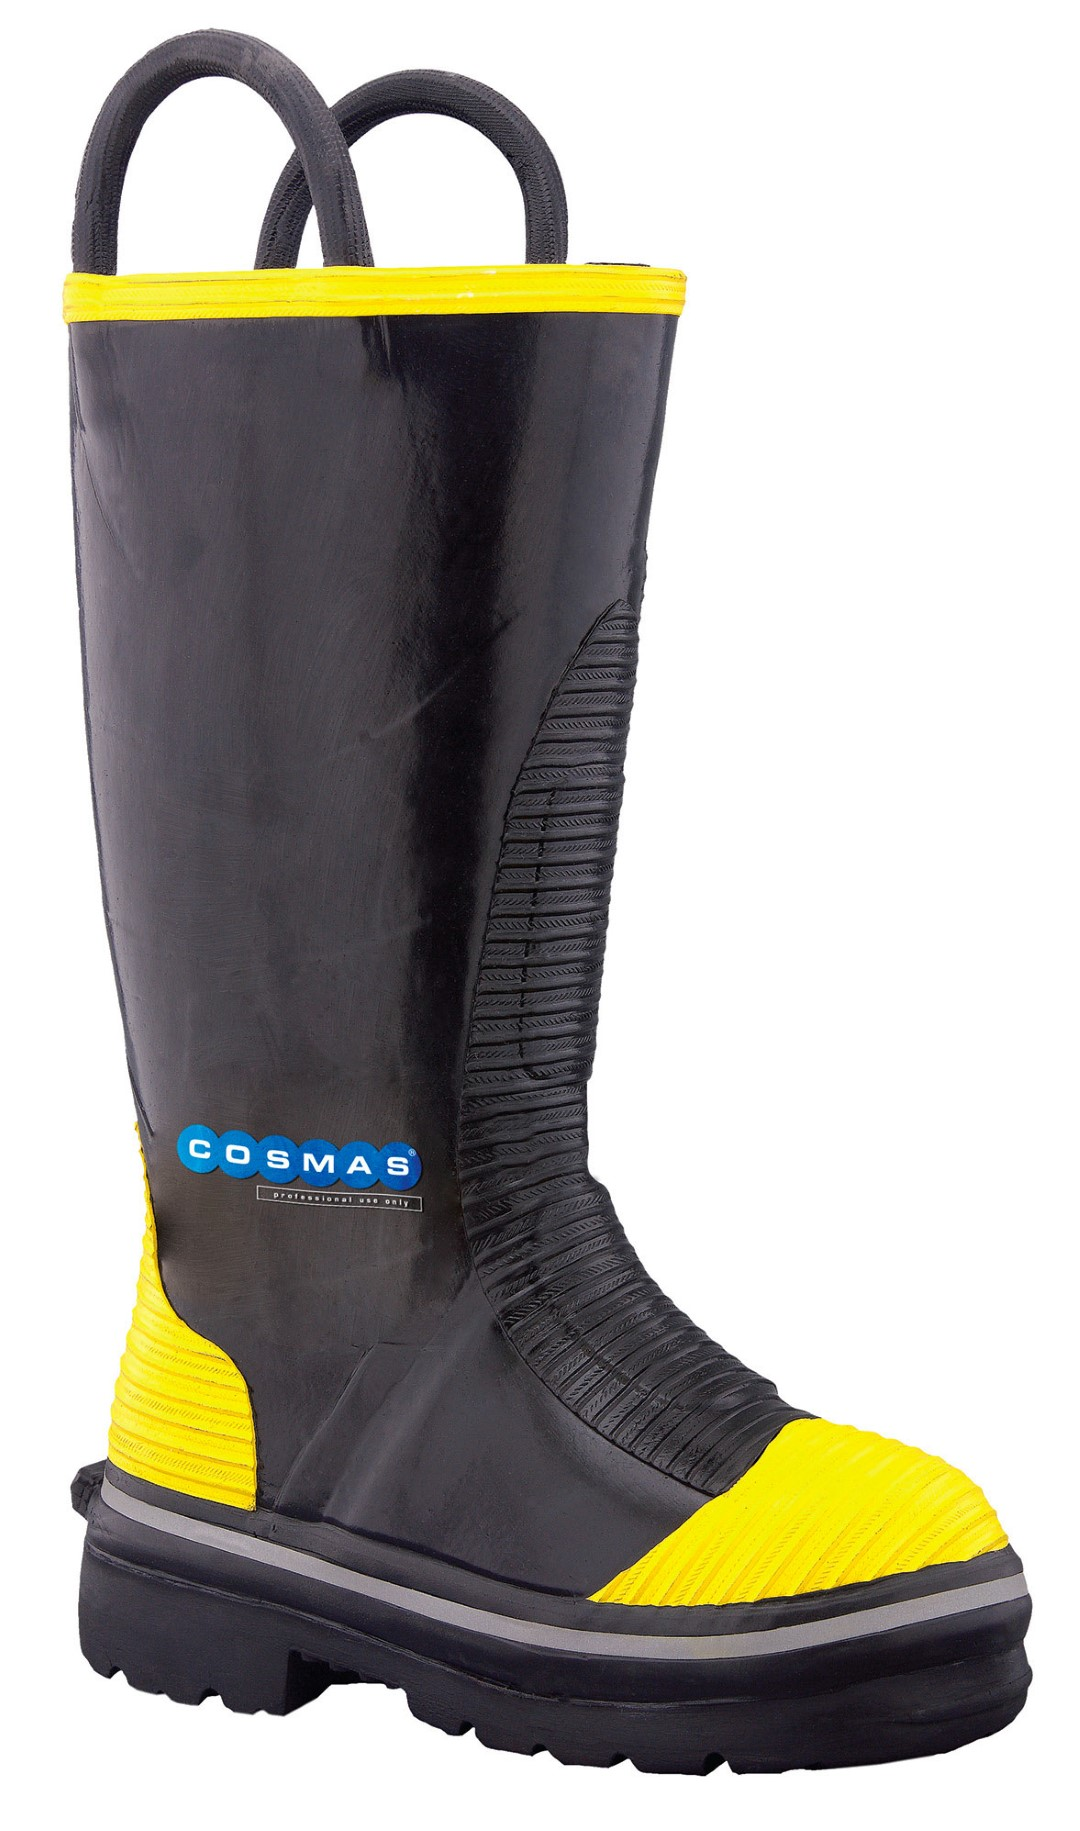 Cosmas 13 Inch Java Rubber Turnout Boot With Nomex Lining